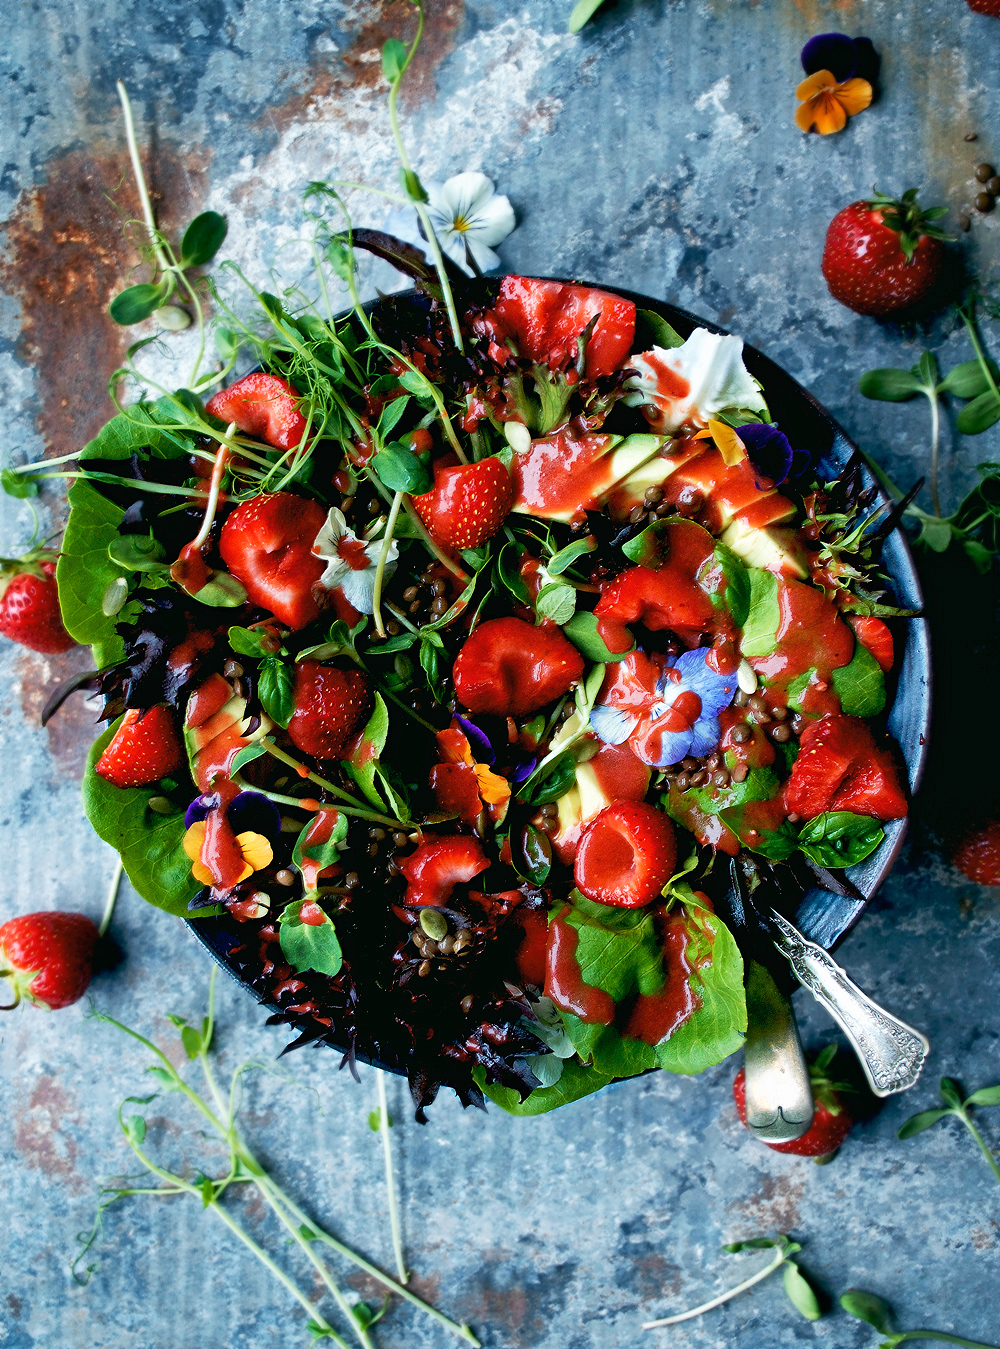 Summer Salad with Strawberry Vinaigrette | occasionallyeggs.com